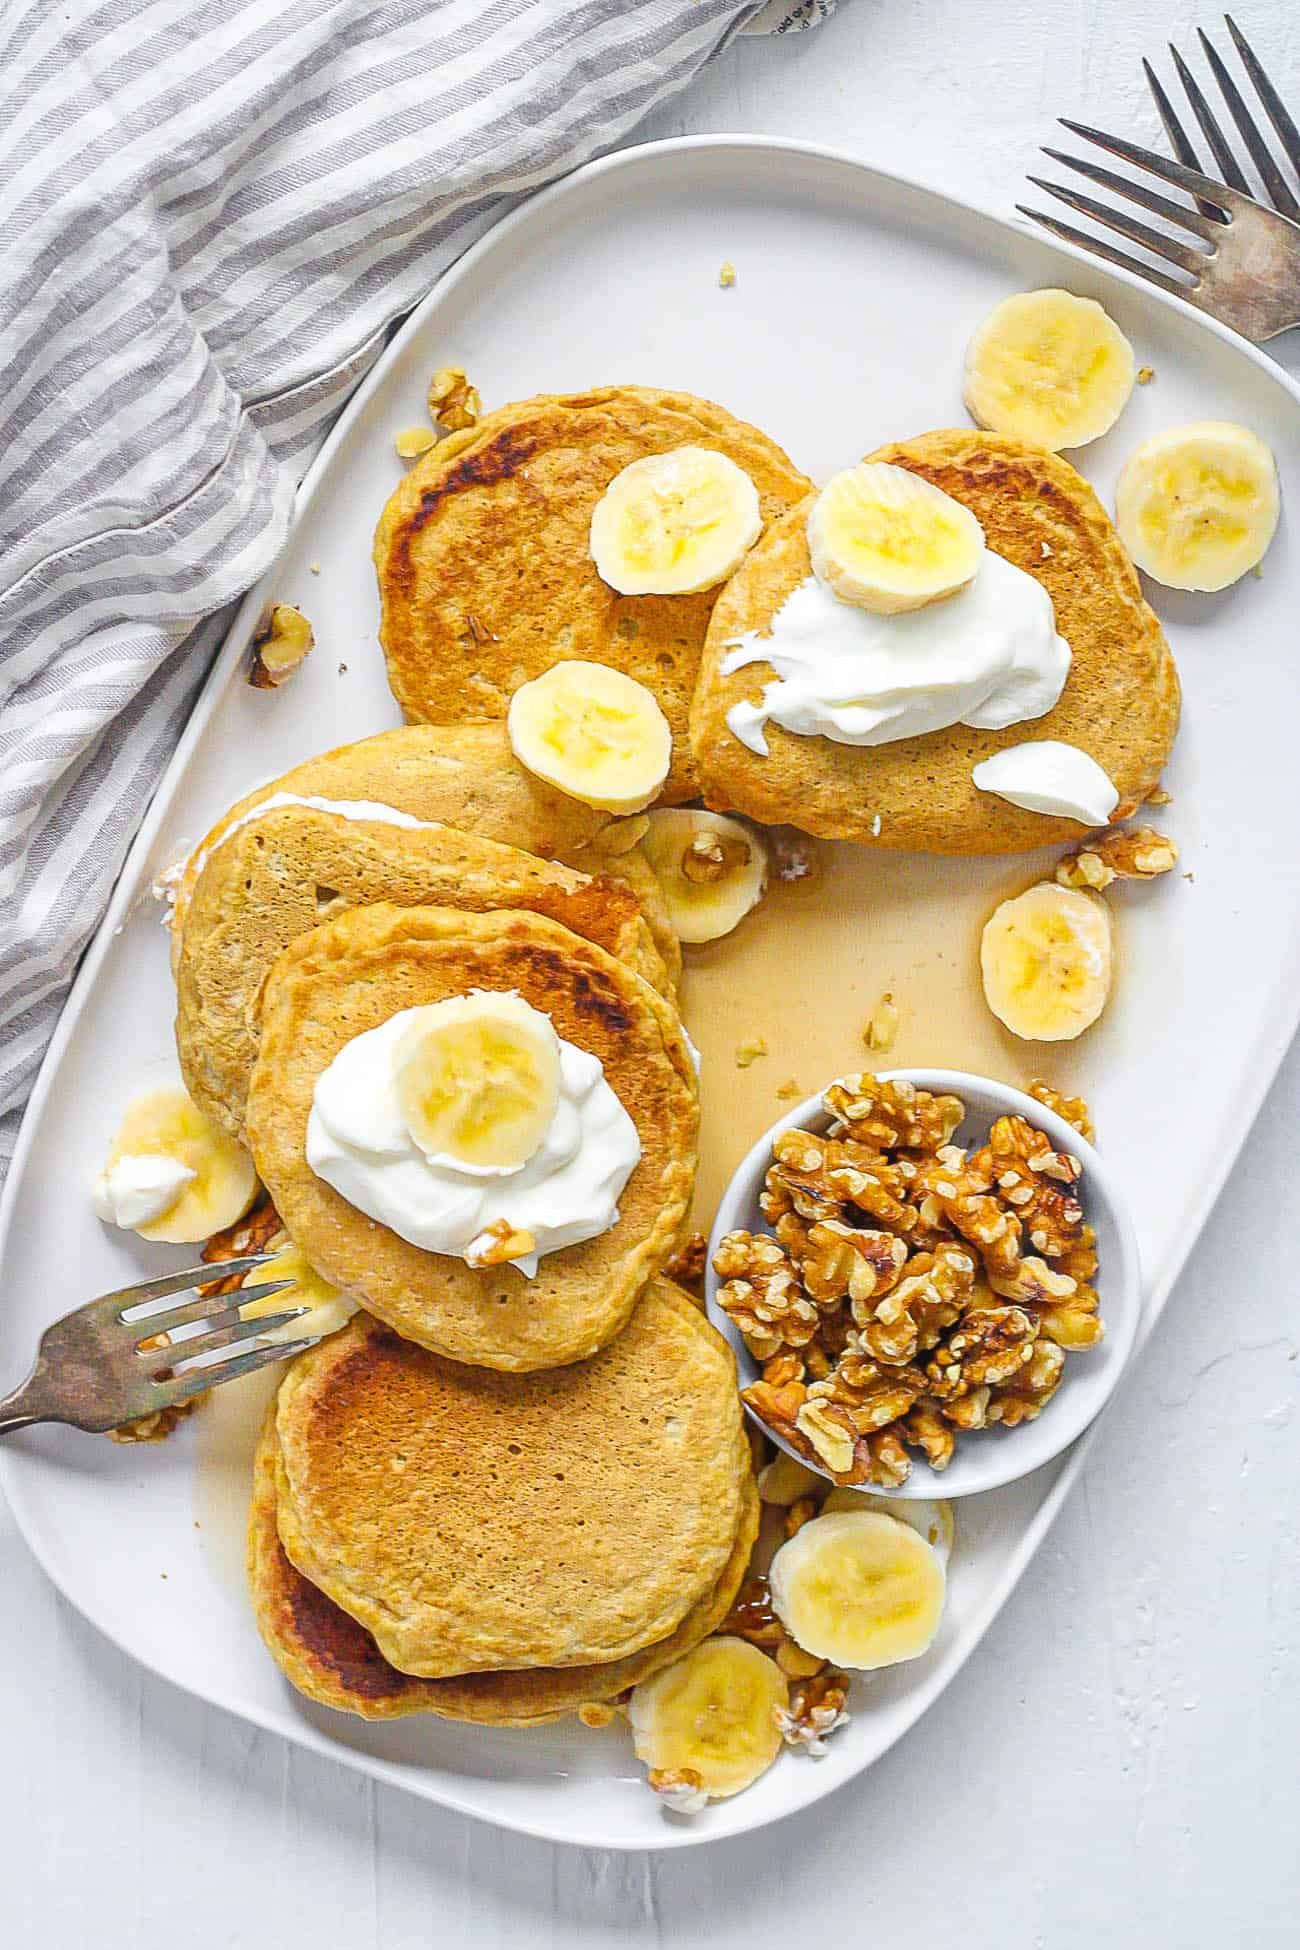 Healthy Pancakes spread out on a white plate with oatmeal and bananas and nuts and syrup